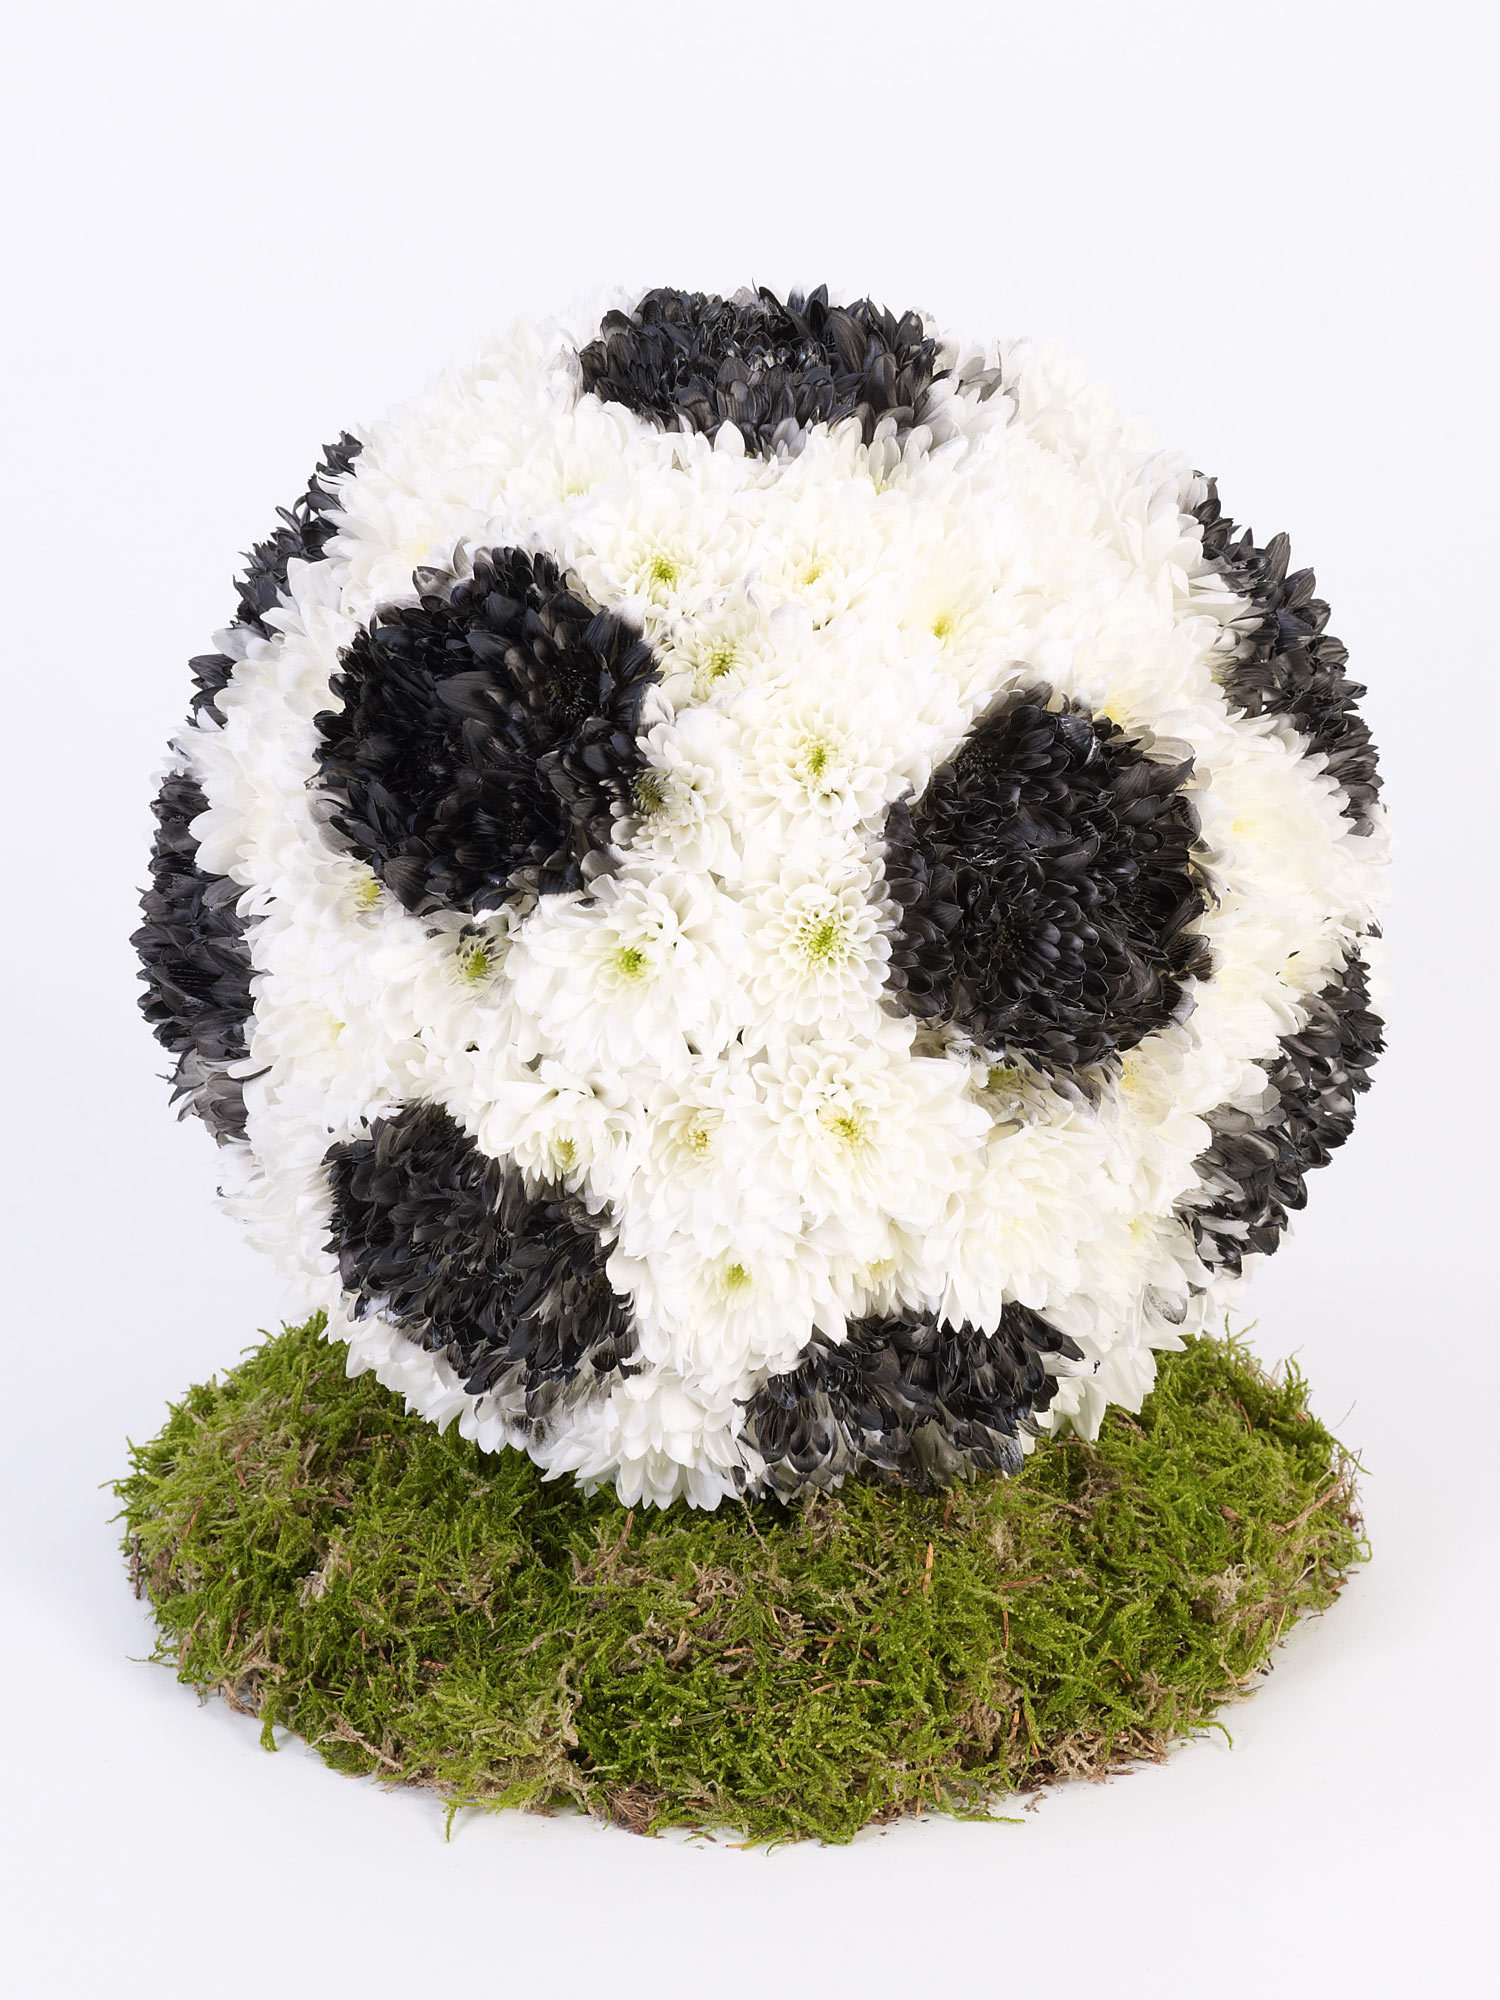 A floral arrangement made to look like a football